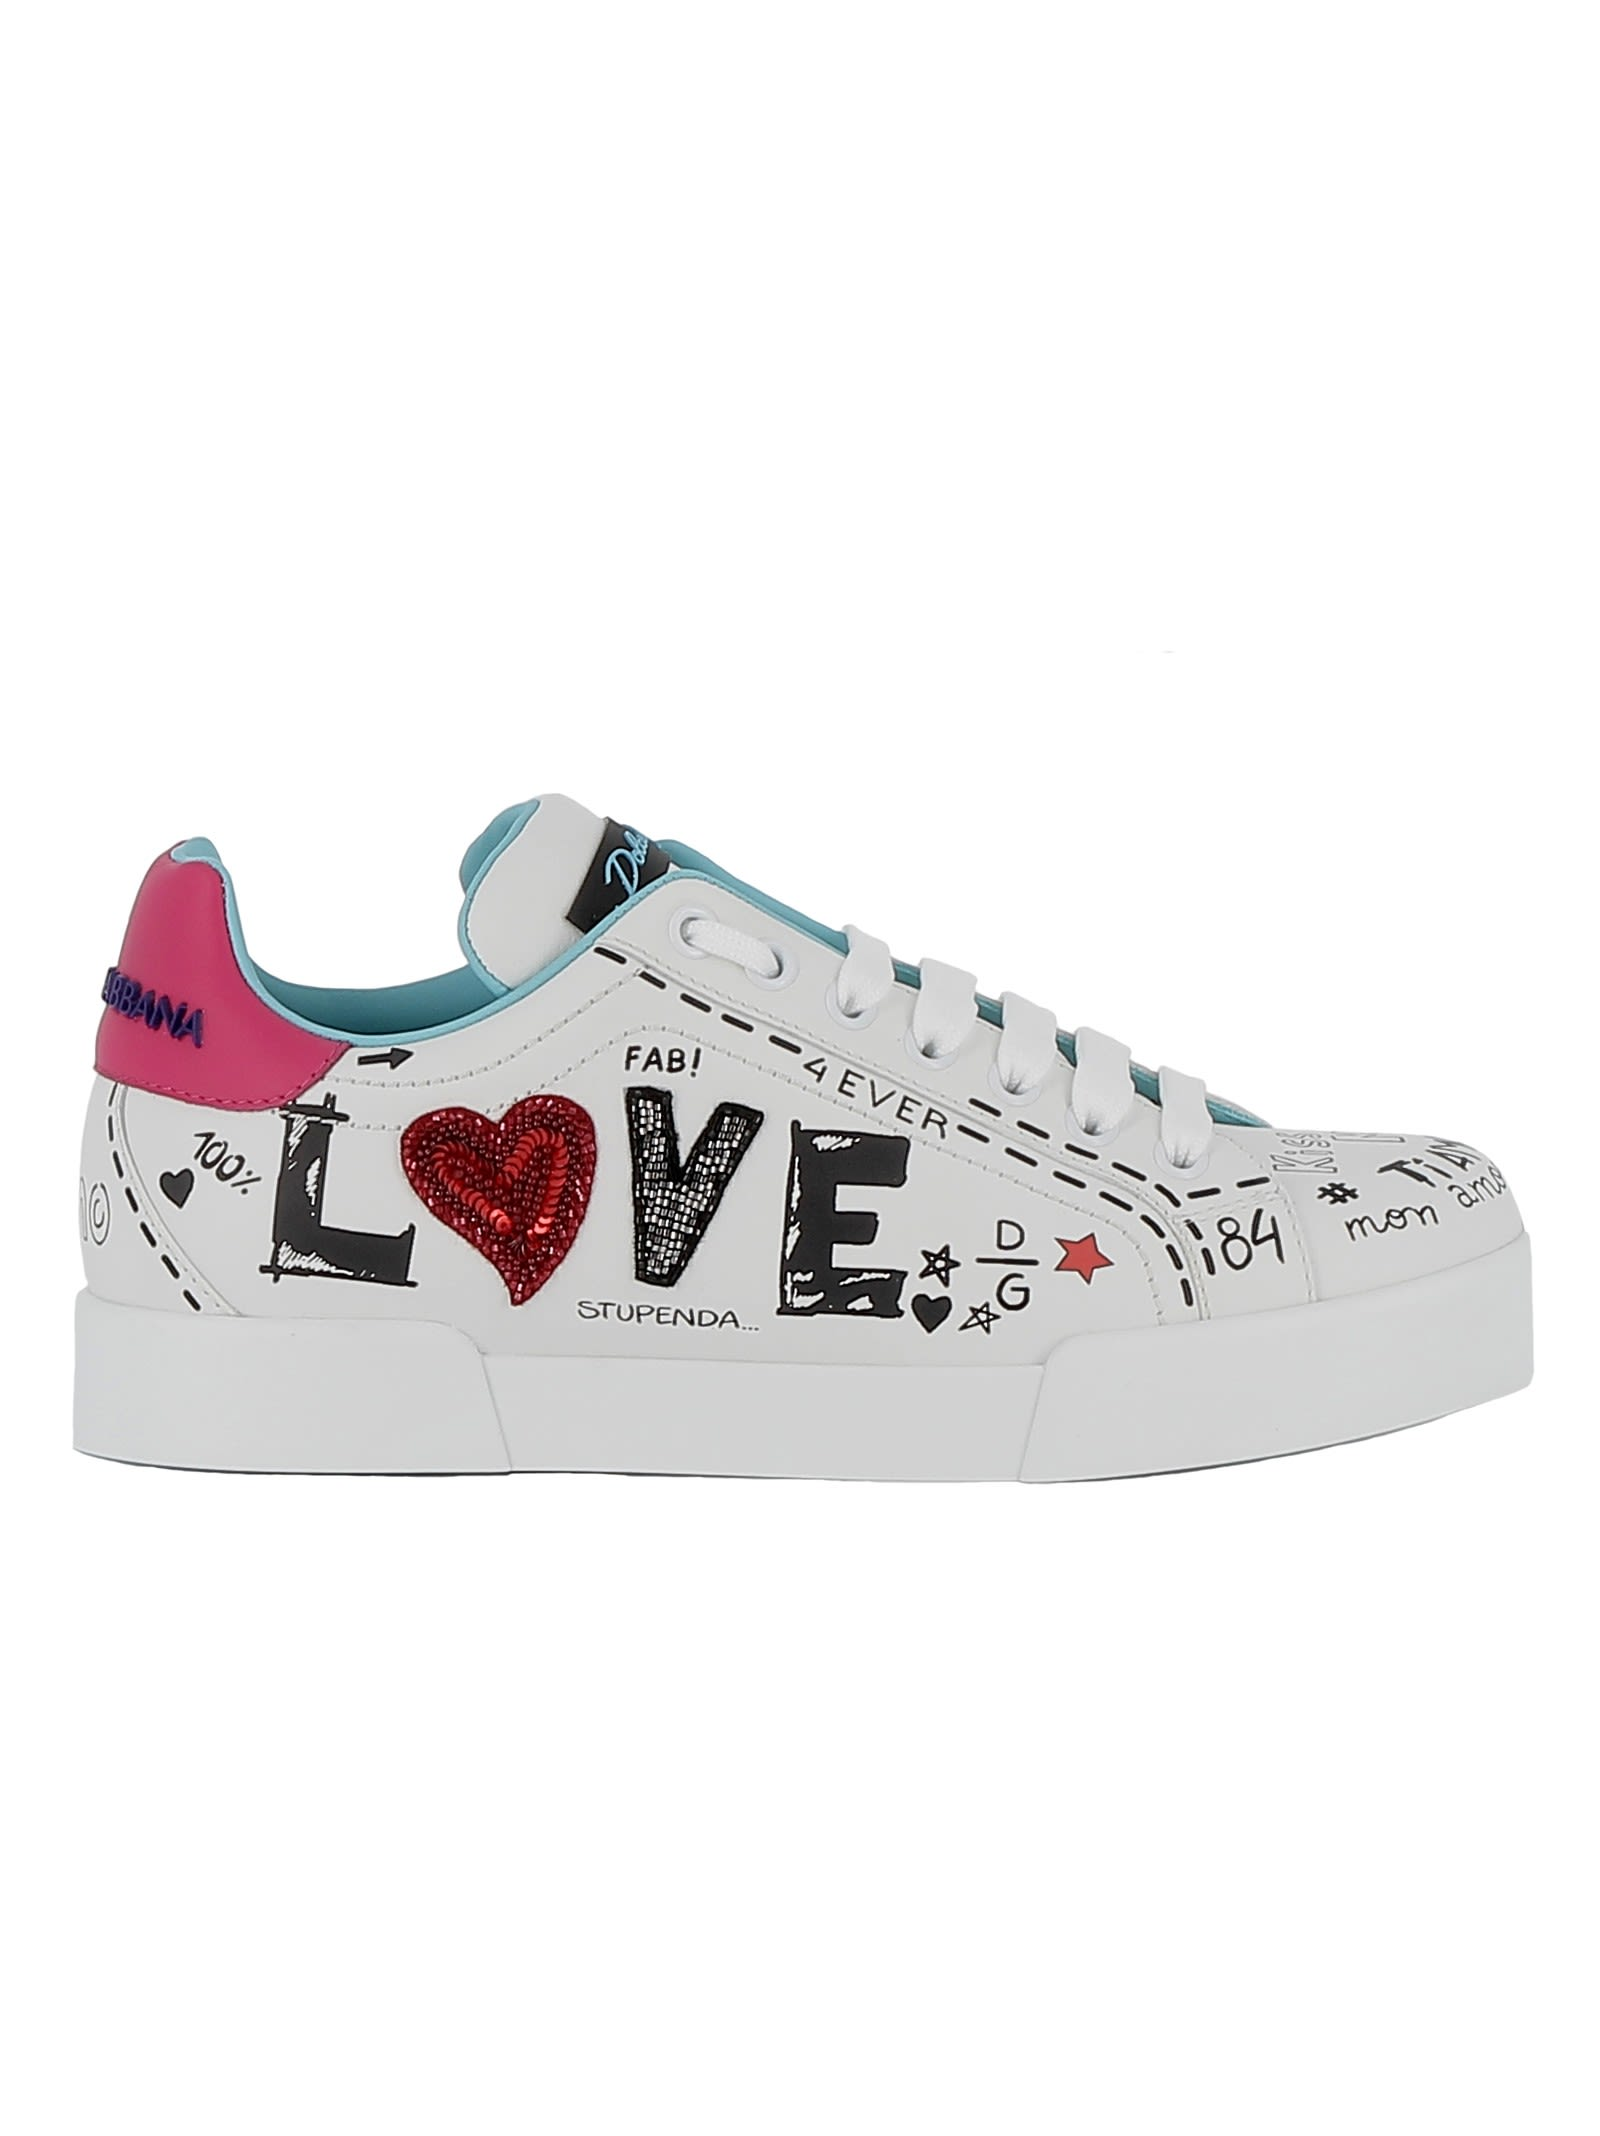 Dolce & Gabbana Multicolor Leather Sneakers thumbnail